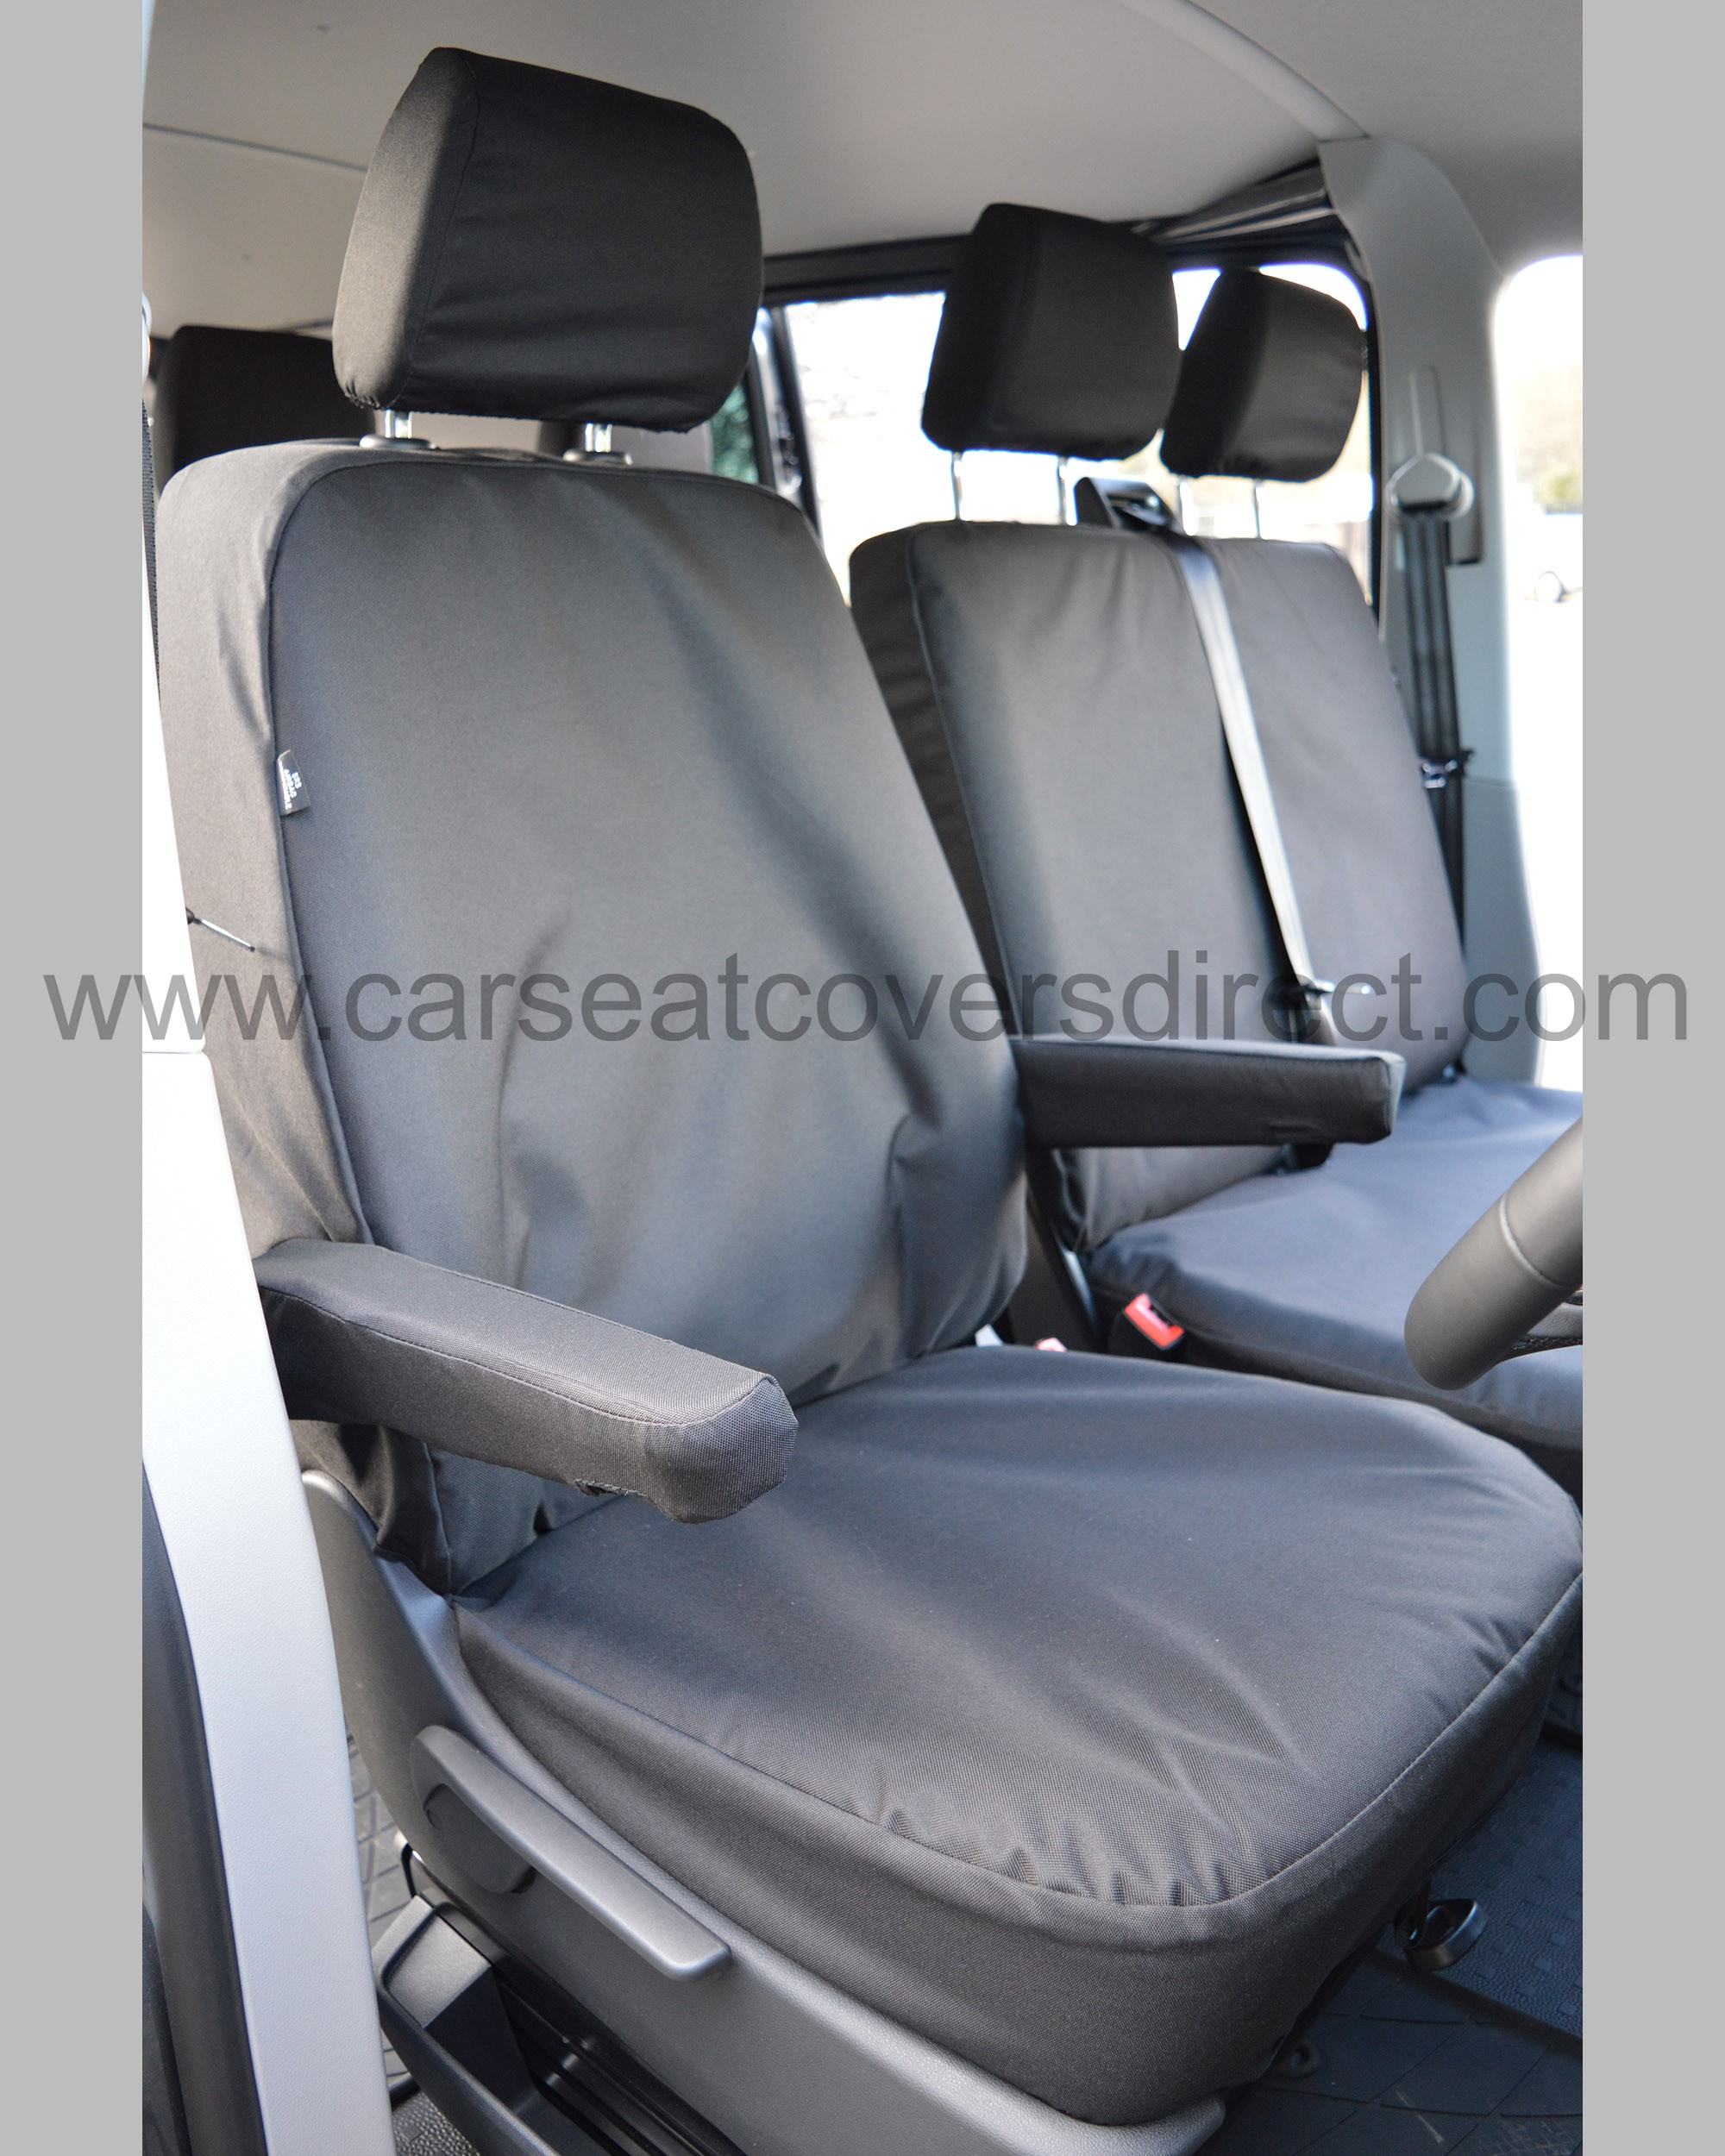 VW Transporter extra heavy duty seat covers - drivers seat